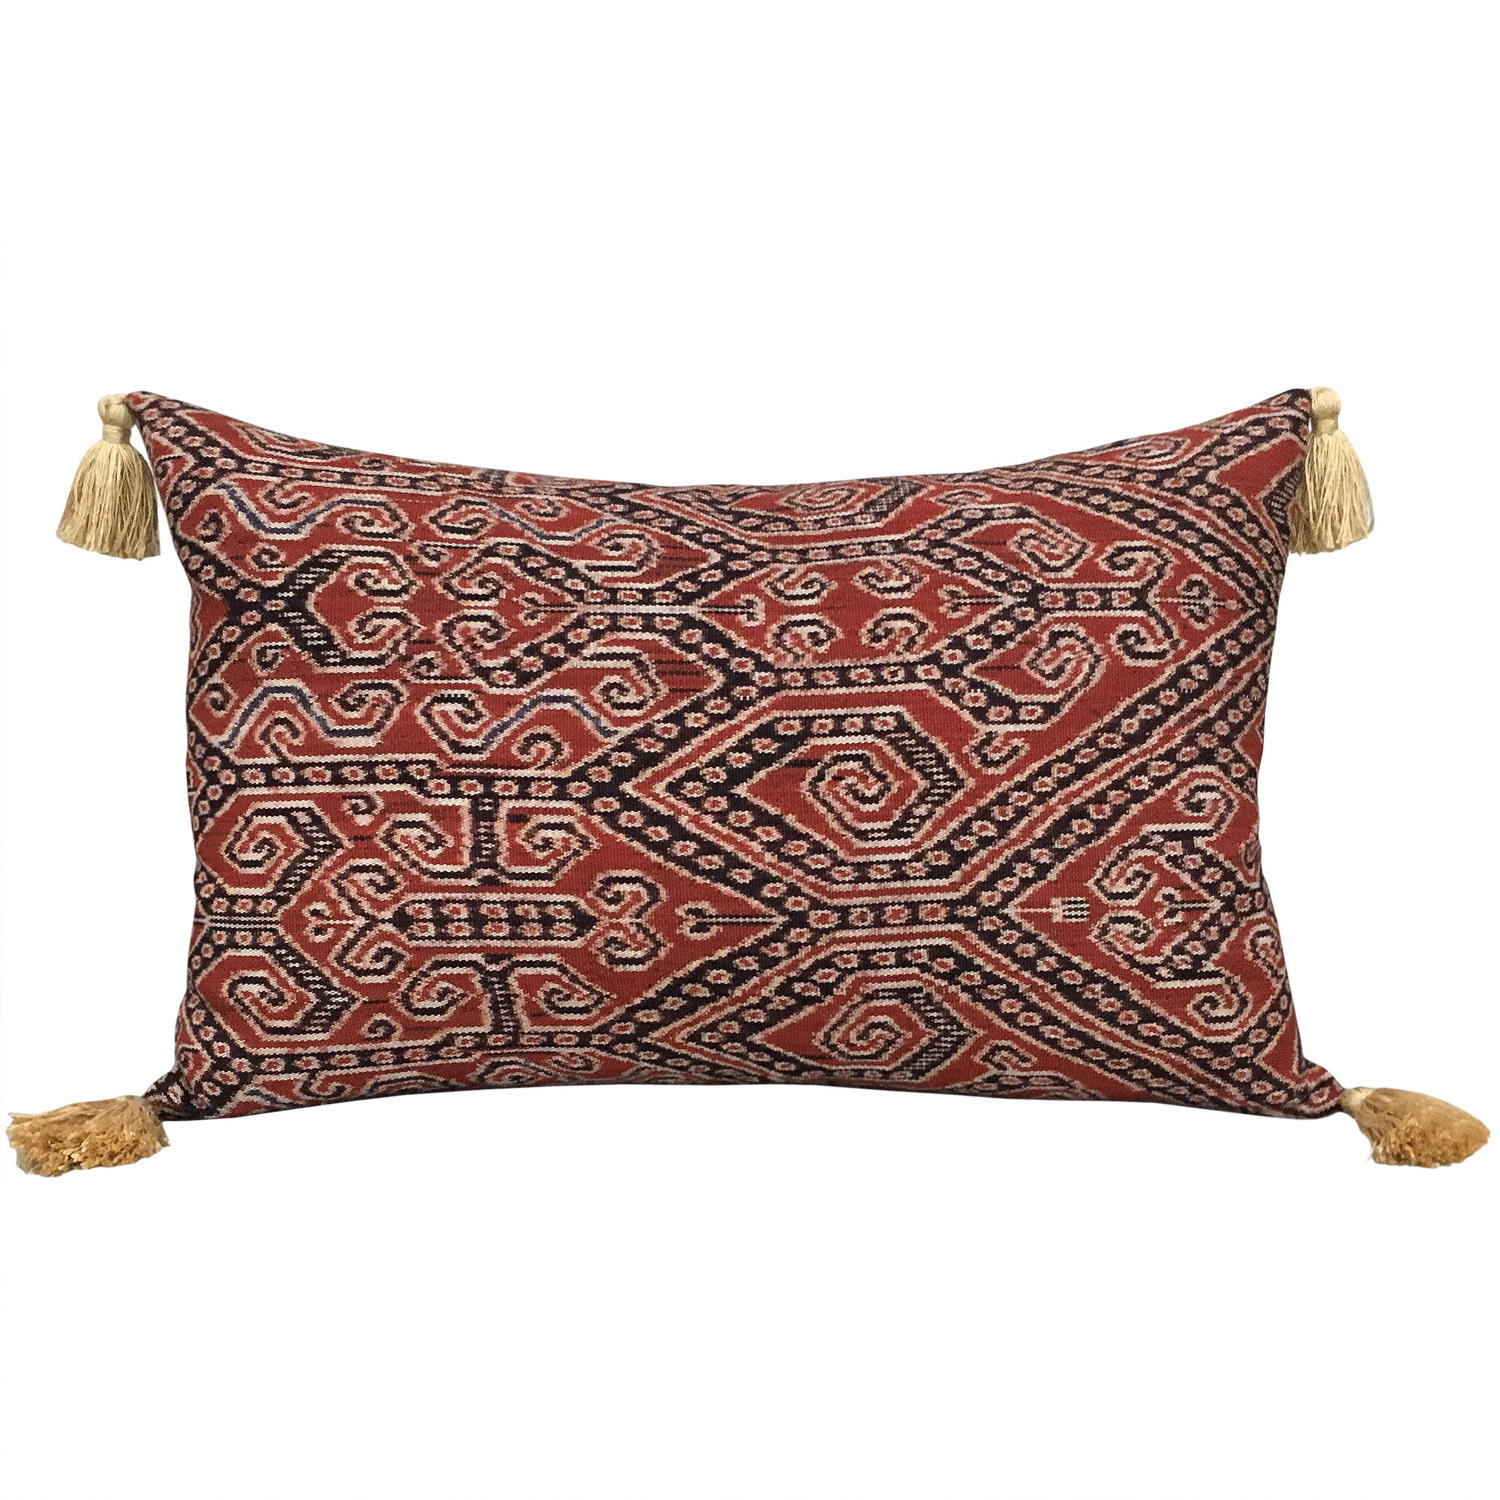 Iban Ikat Cushion with Tassels